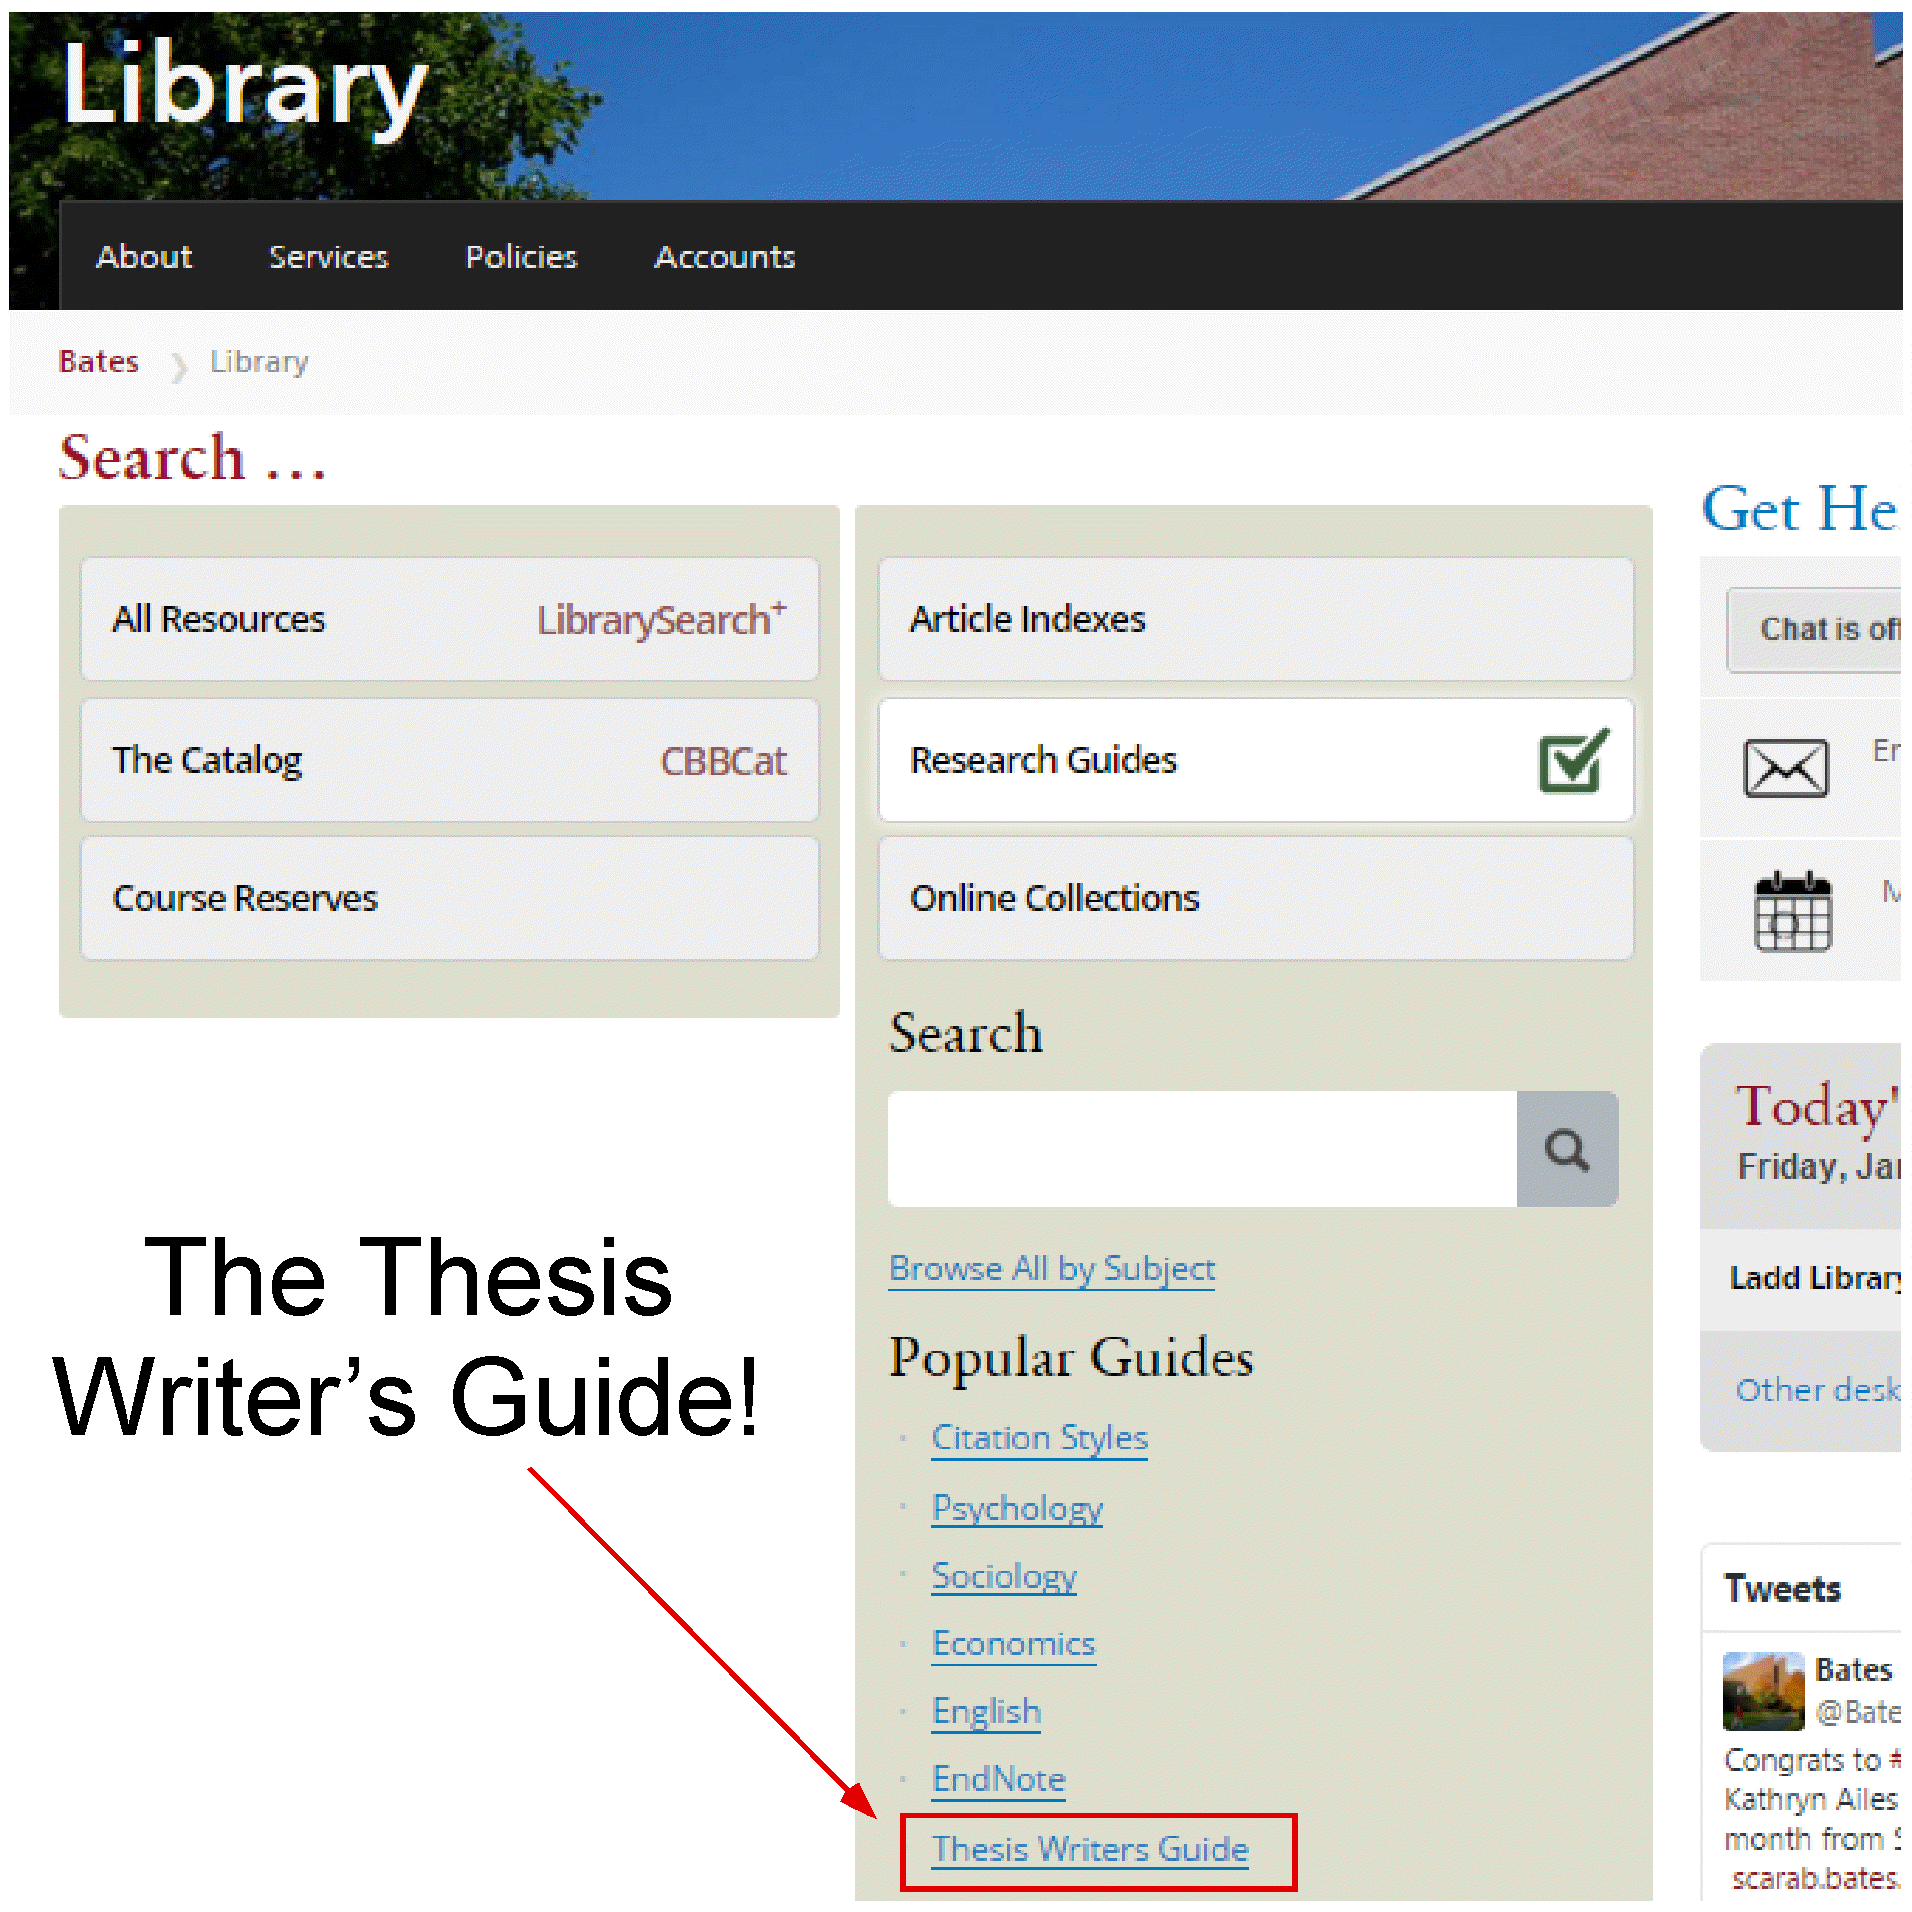 phd thesis database usa The phd thesis of one of the most celebrated modern scientists is online for all to read - if you understand it buzz60 good luck trying to read the phd thesis of a young stephen hawking on monday, the university of cambridge in the uk announced it would post hawking's thesis.